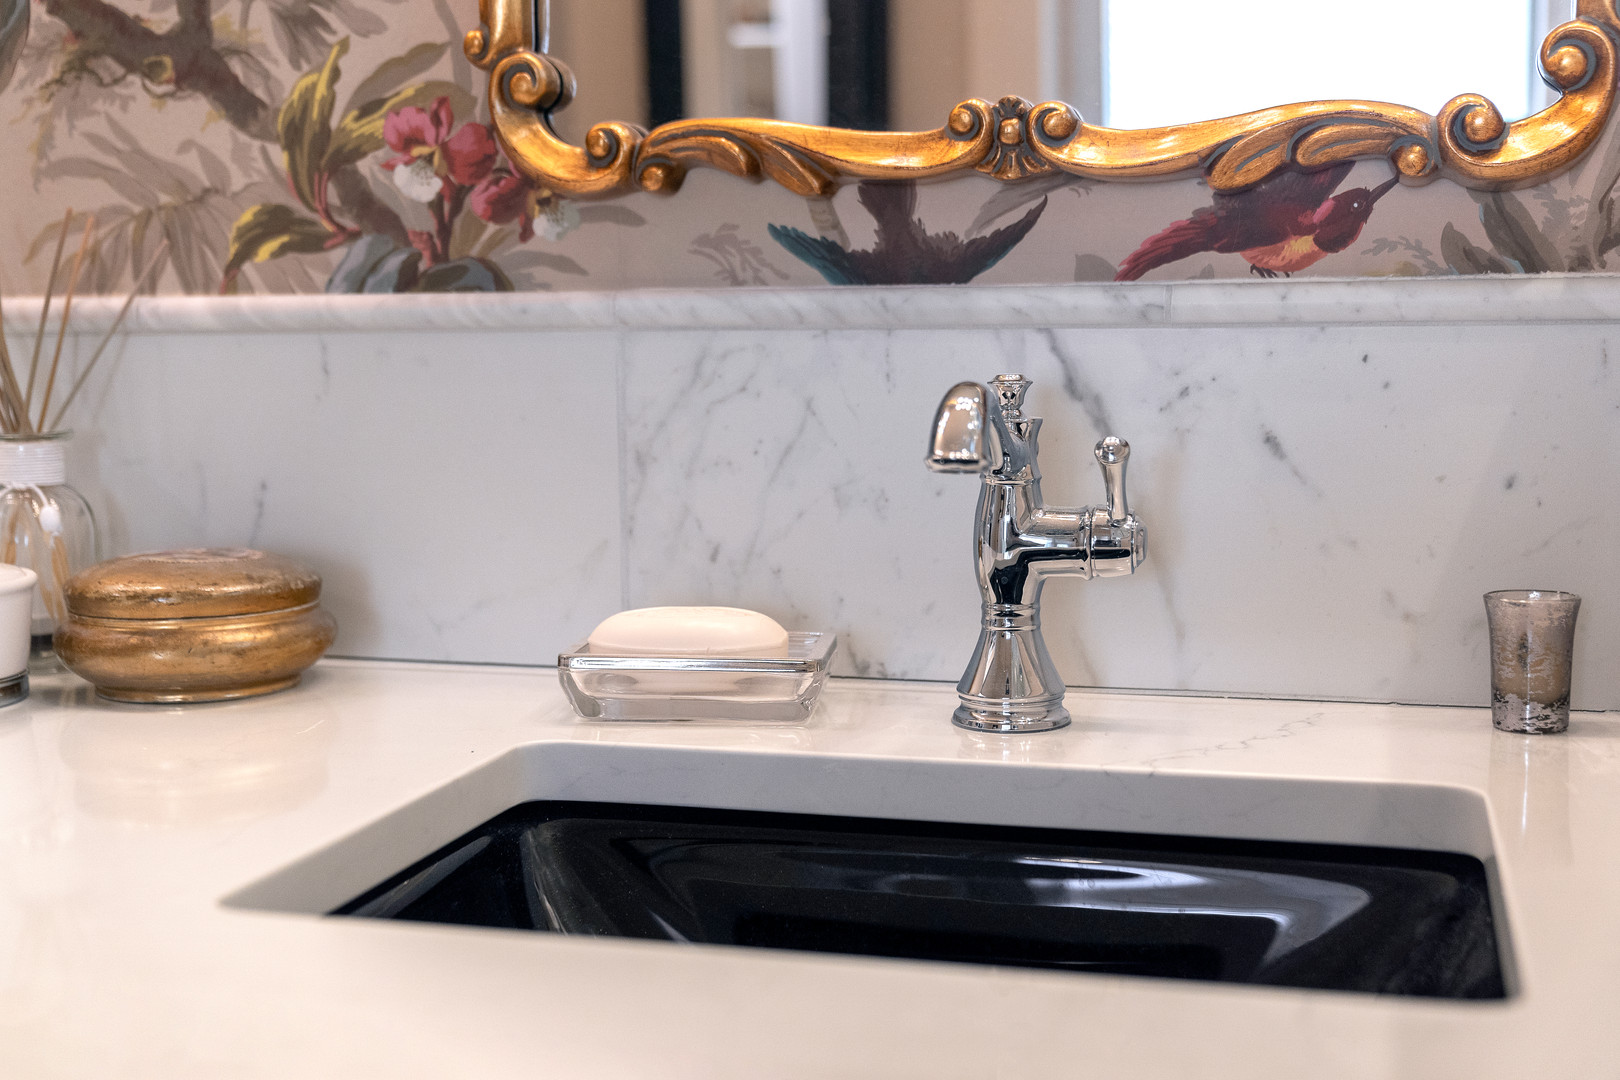 Black sinks with white countertops